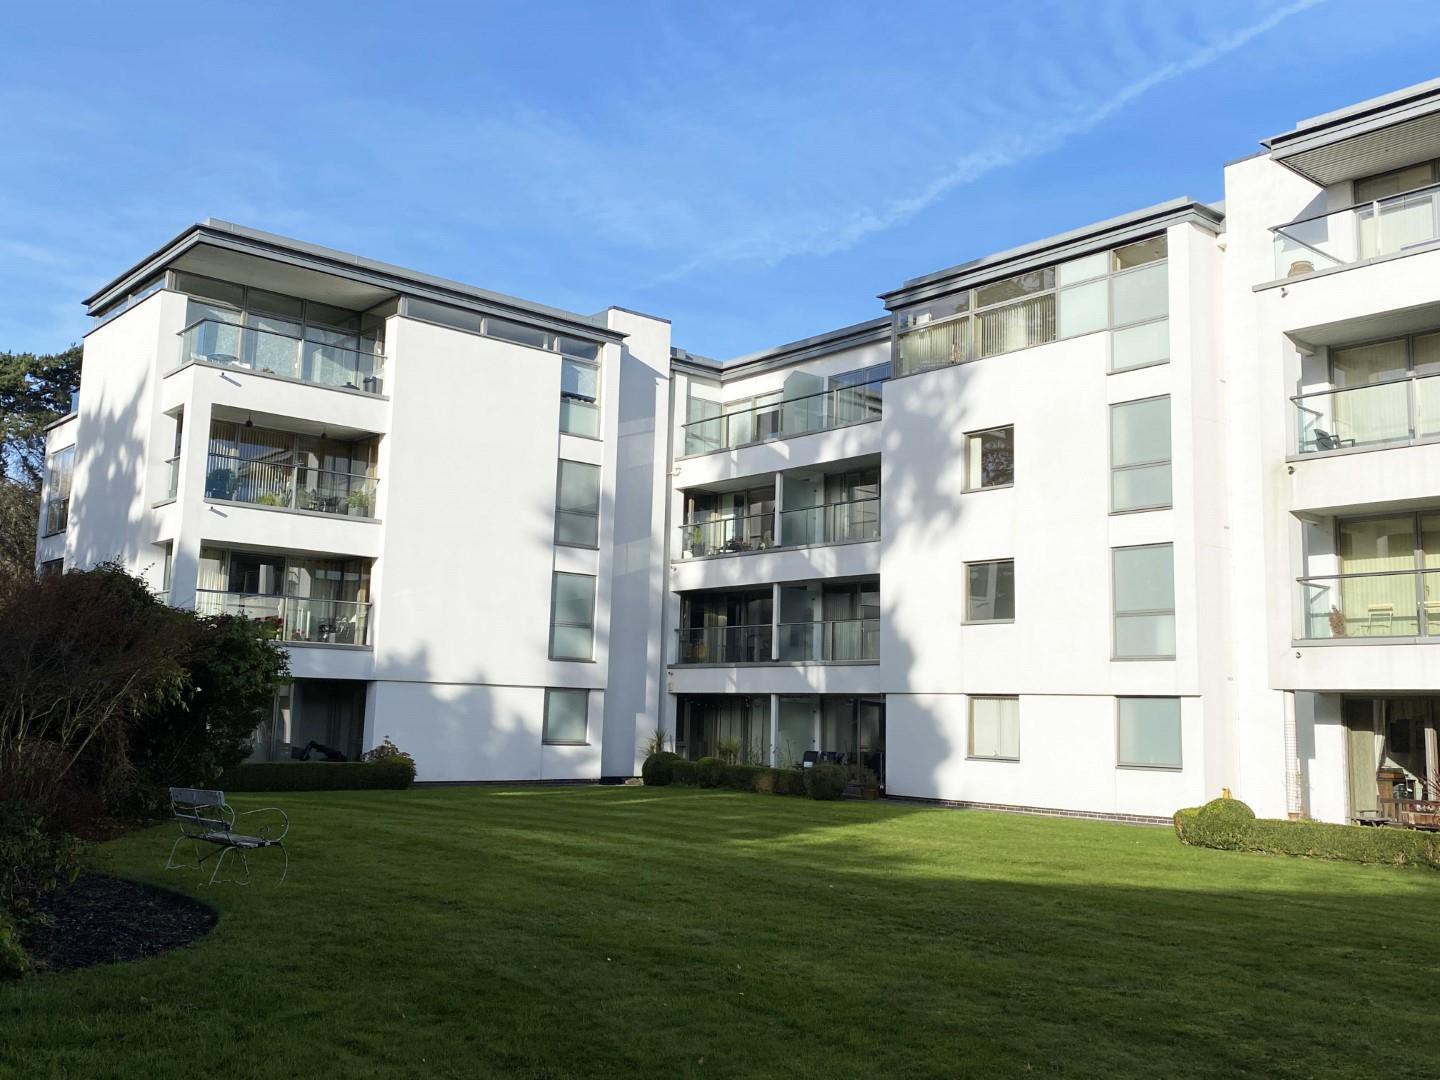 Flat 11, The Point, Hereford